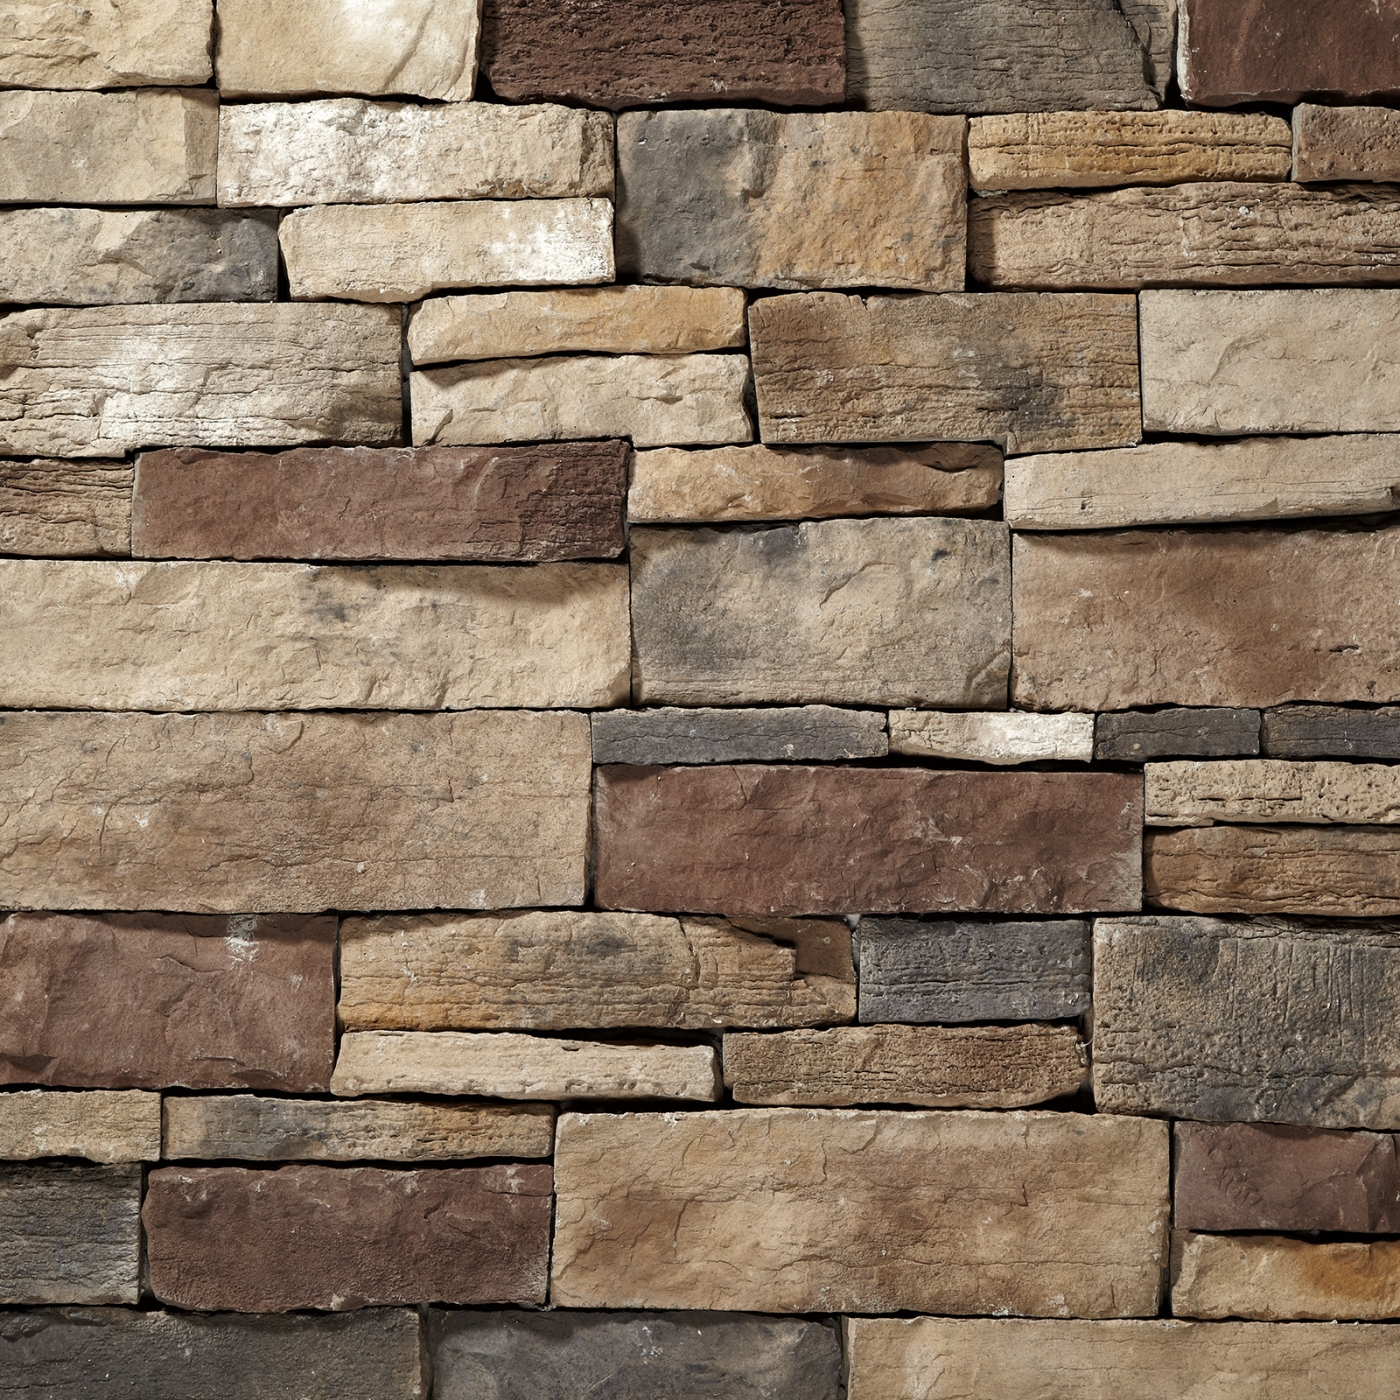 Northwoods Weather Edge Ledgestone Stone Veneer from Environmental StoneWorks